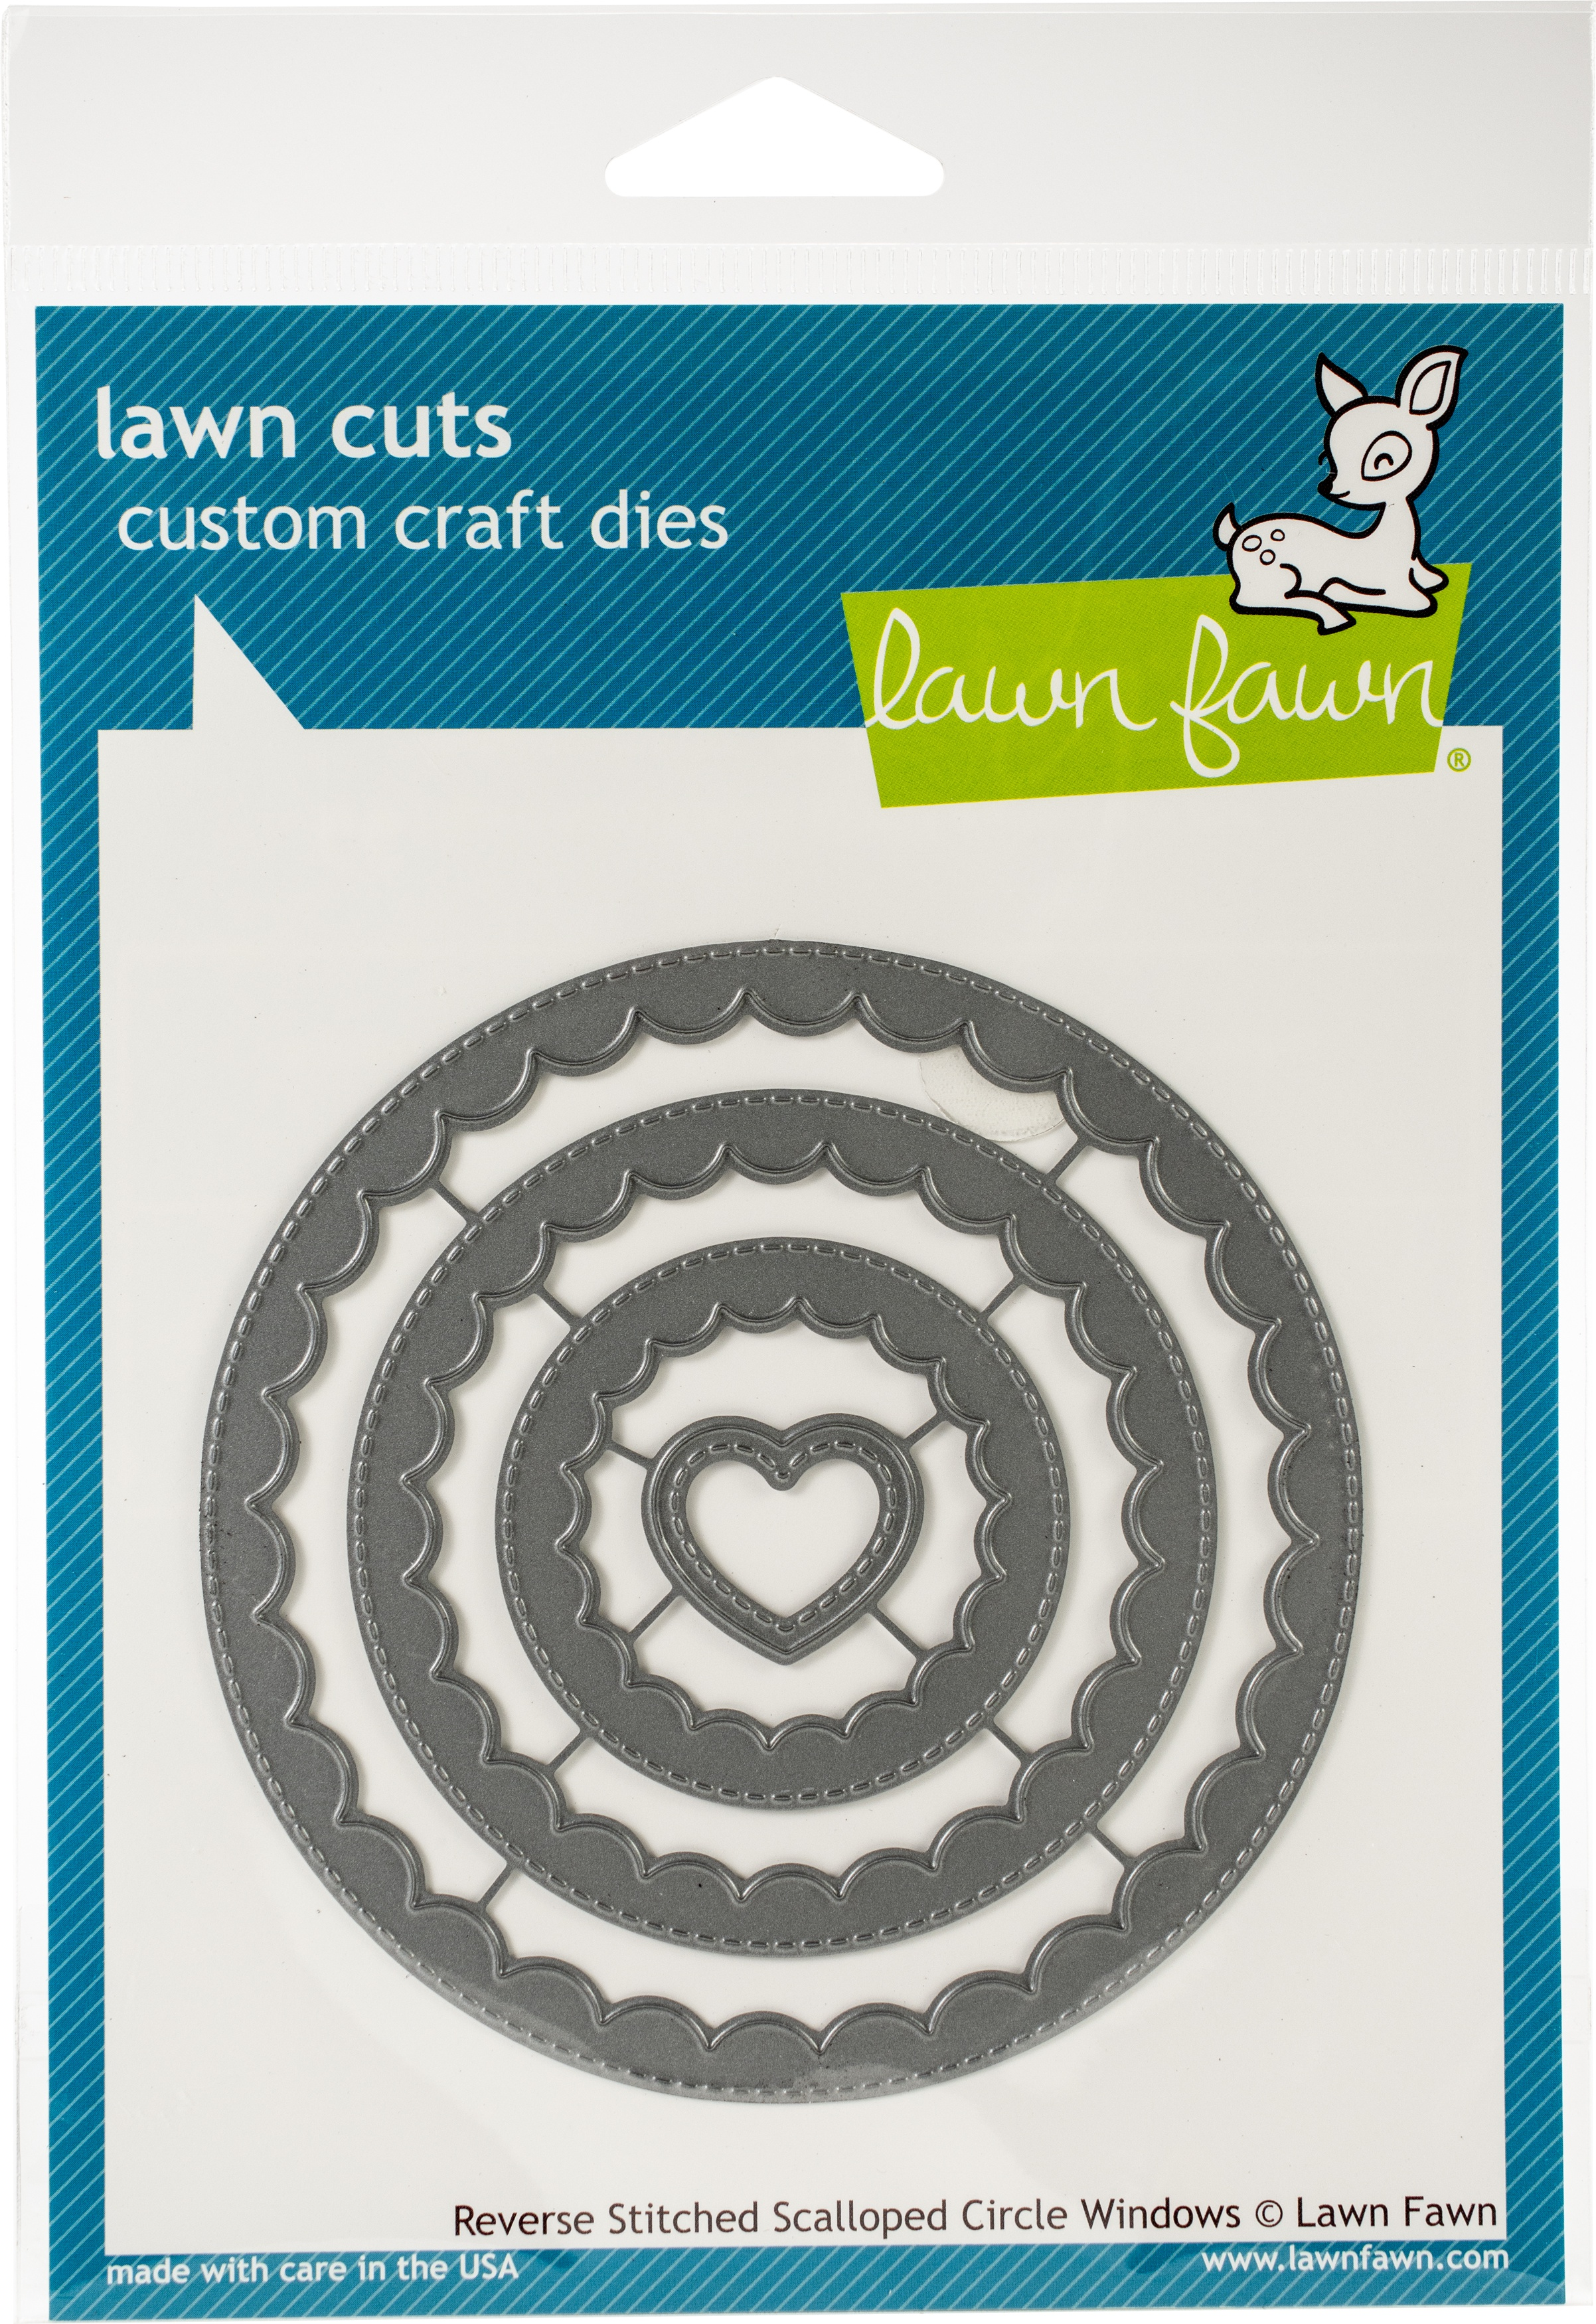 Lawn Cuts Custom Craft Die-Reverse Stitched Scalloped Circle Window